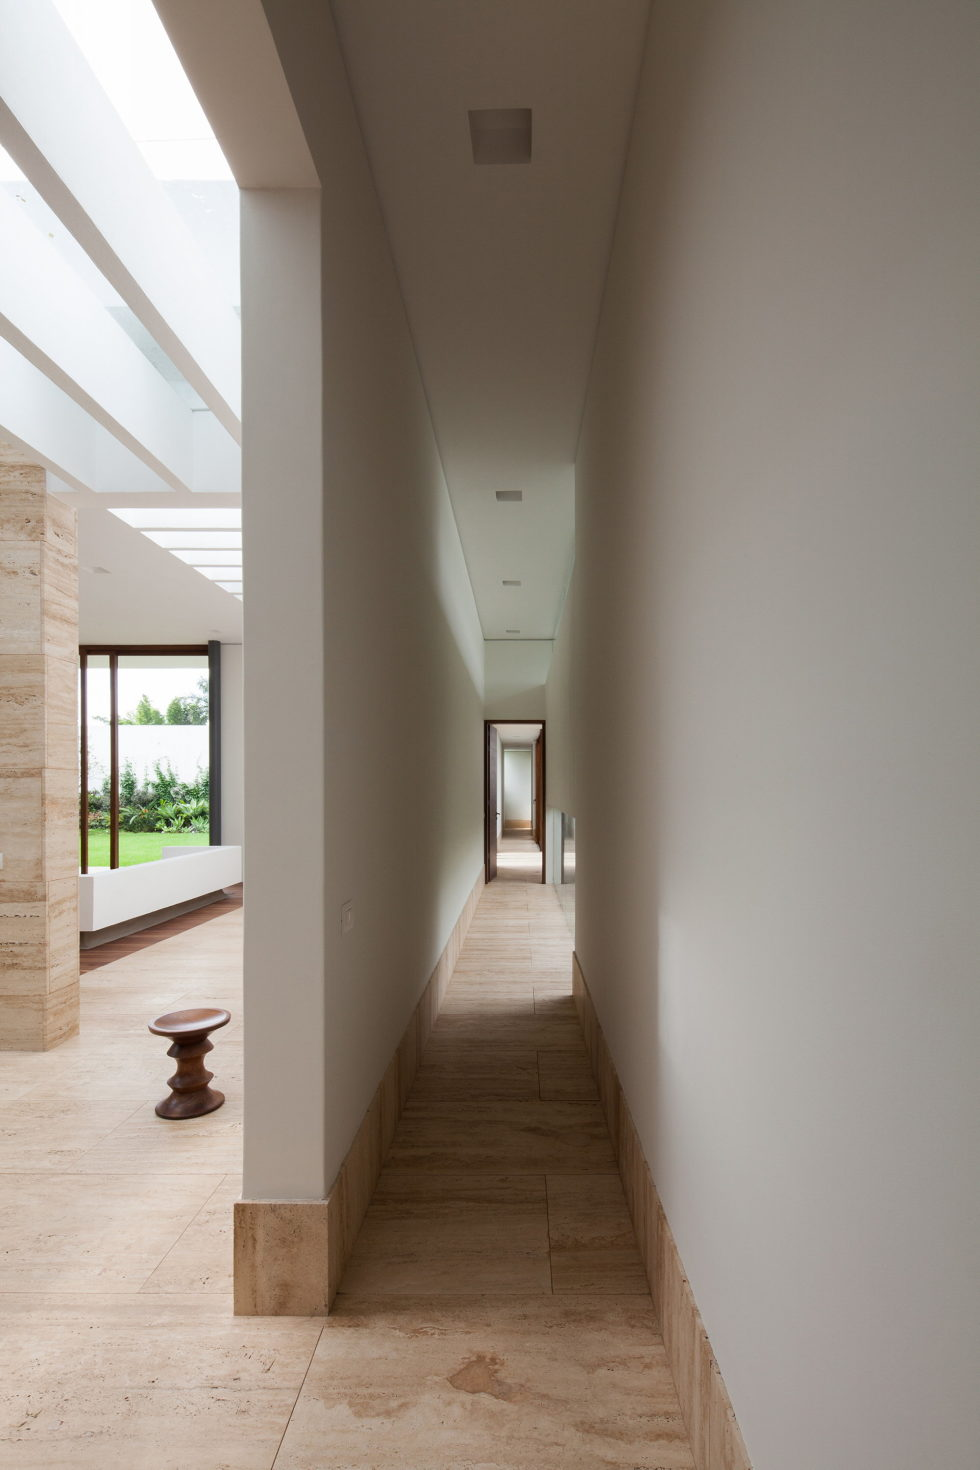 Casa Ocho Jardines Residency In Minimalism Style From Goko MX Studio 13